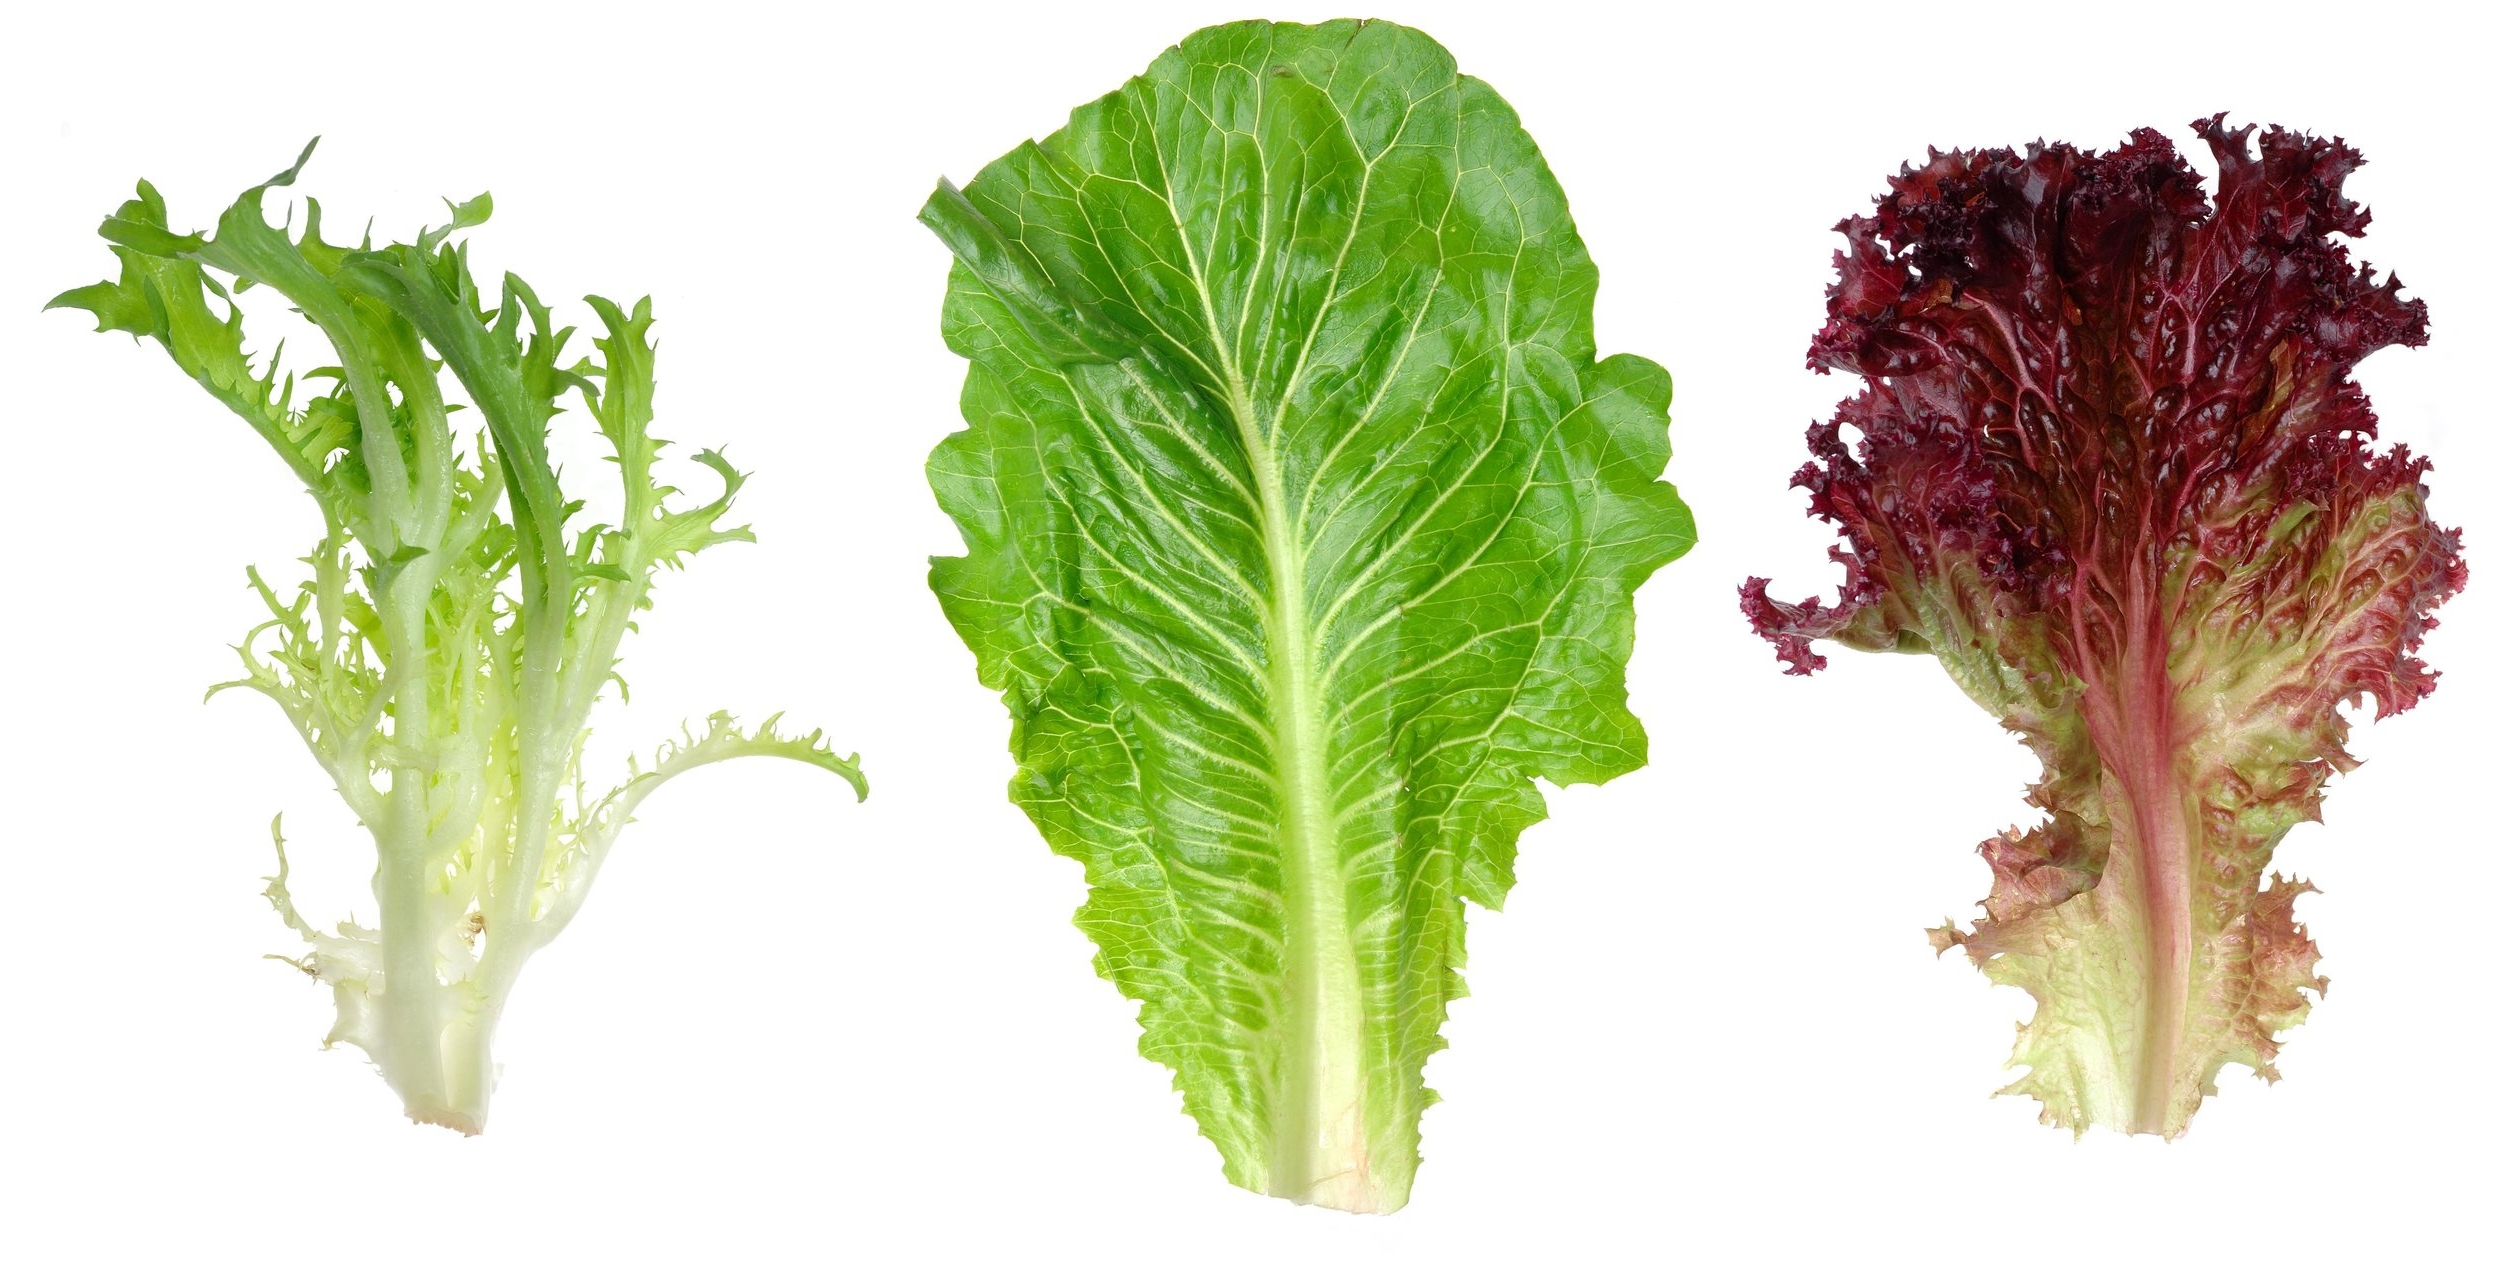 How can you ensure that your leafy greens are sustainably farmed? How can you ensure that it contains all the beneficial microbes from healthy soil ( example ) and not the potentially harmful bacteria via manure from high grain farming operations? Animal manure from intensively farmed operations are a pollutant. The lettuce in your fridge may look pretty, but is it good for you? If it was fertilised by manure from healthy, grass-fed animals in  organic and regenerative systems  it is likely to be the better and safer option. When there is more biology (good microbes) in the soil, this enables the plants to take up more  minerals and nutrients .  This is worth advocating for.   In addition, it is also becoming clear that vegans in general tend to be disconnected from farming methods. They tend to confuse industrial dairying and raw dairy production, which is two different industries, with different production standards and different values. In America there are many raw milk producers who were once vegans and many ex-vegan raw milk consumers...  this is a very curious reality.  It is possible that in being disconnected from farming methods that create  nutrient-dense foods , these people were disconnected from nutrition. In this  interview  at the 31 minute time marker, raw milk producer  Mark McAfee  explains why the human brain requires good fats for nervous system tissues. He says that Schwann cells require insulation, and that after years of not having animal fats many vegans loose that insulation and become a nervous wreak. He has witnessed that within hours of consuming (regulated) raw cream ex-vegans settle in a calm and stop shaking.